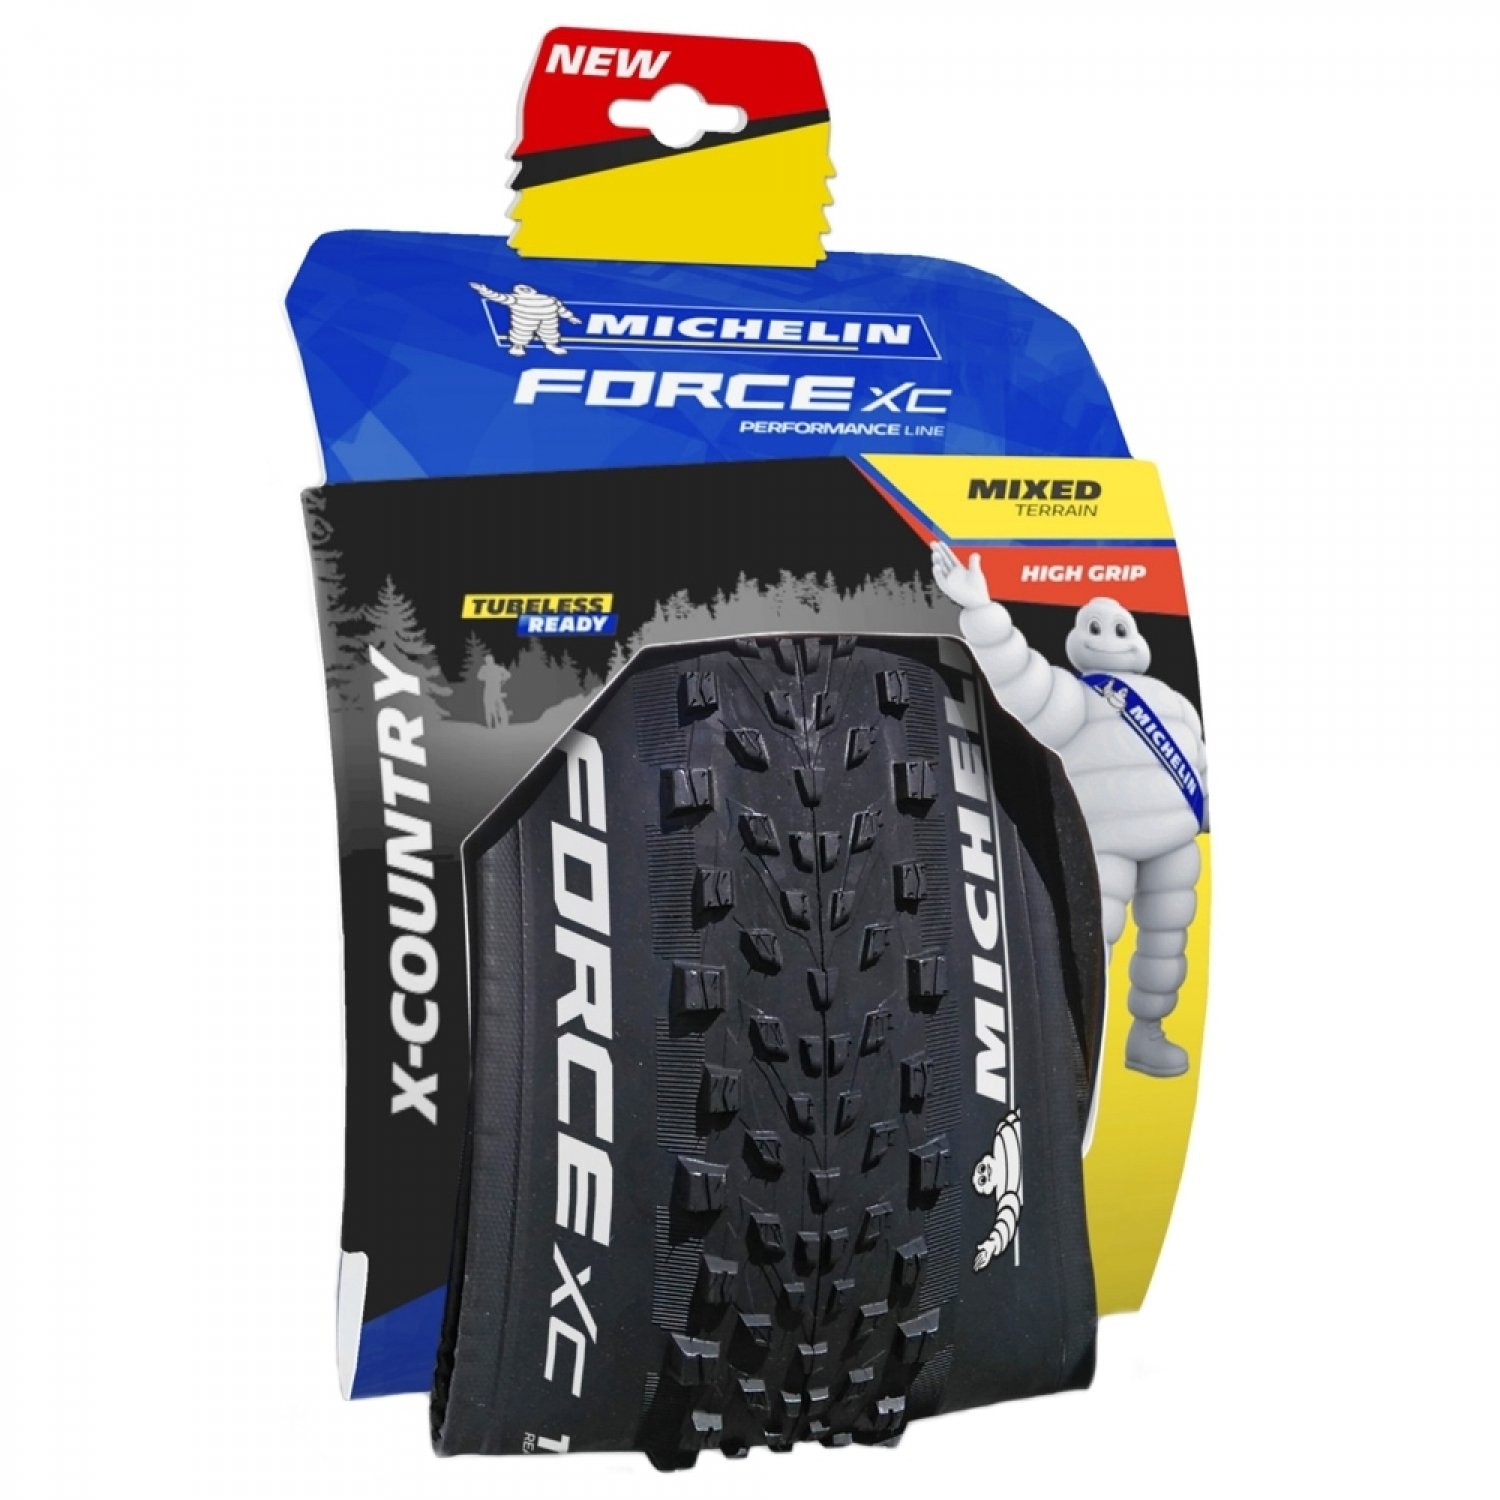 Pneu Force XC Competition 29x2.25 Tubeless Ready Michelin